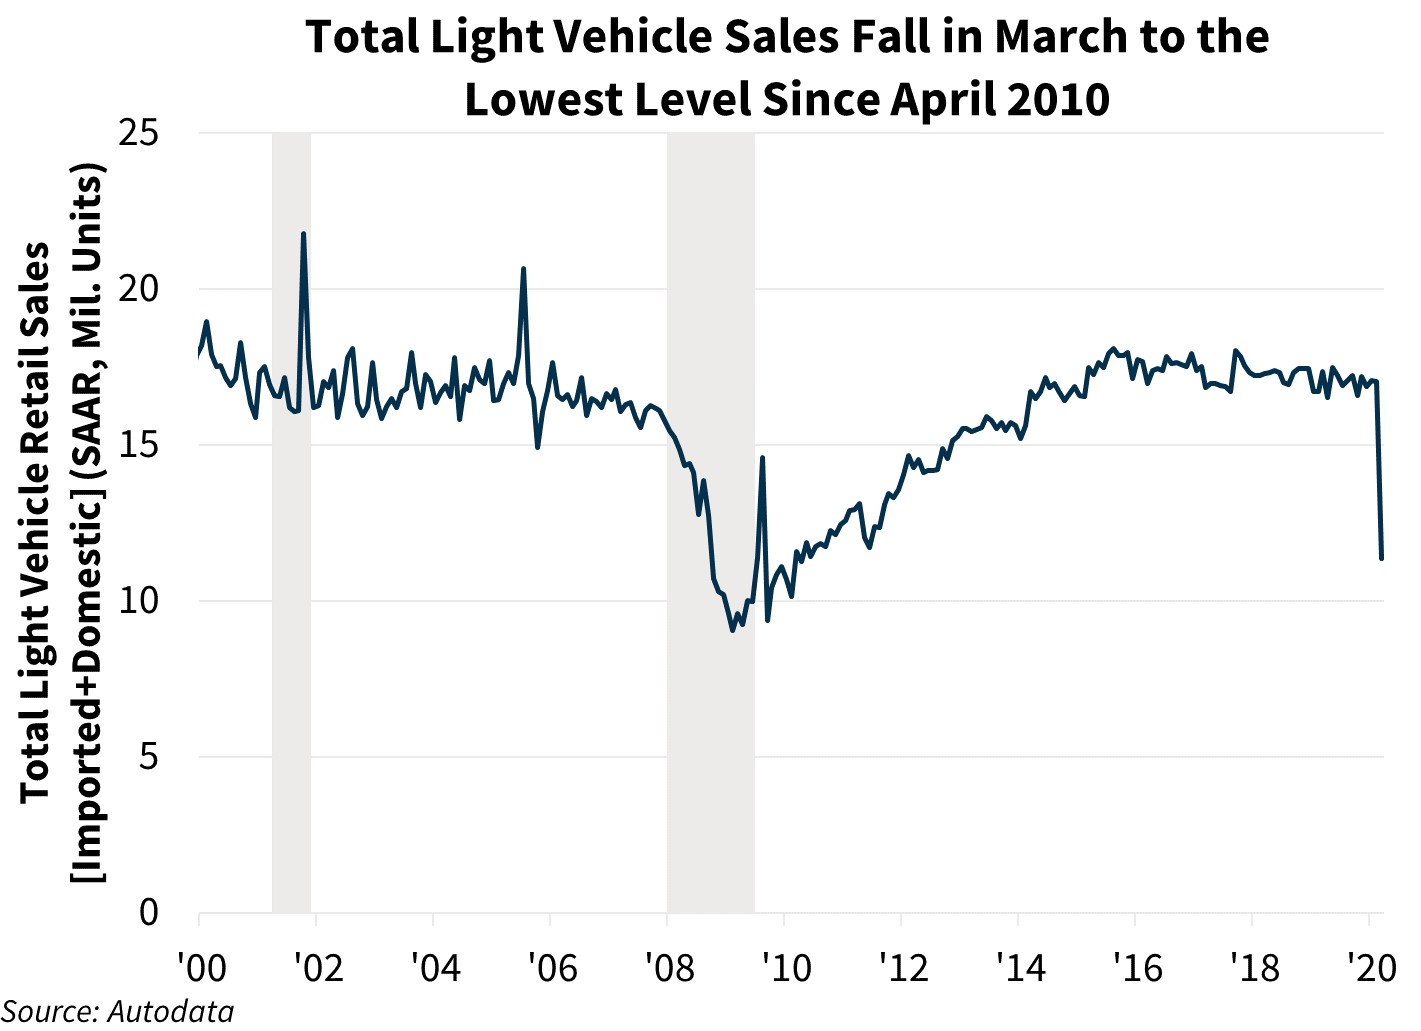 Total Light Vehicle Sales Fall in March to the Lowest Level Since April 2010